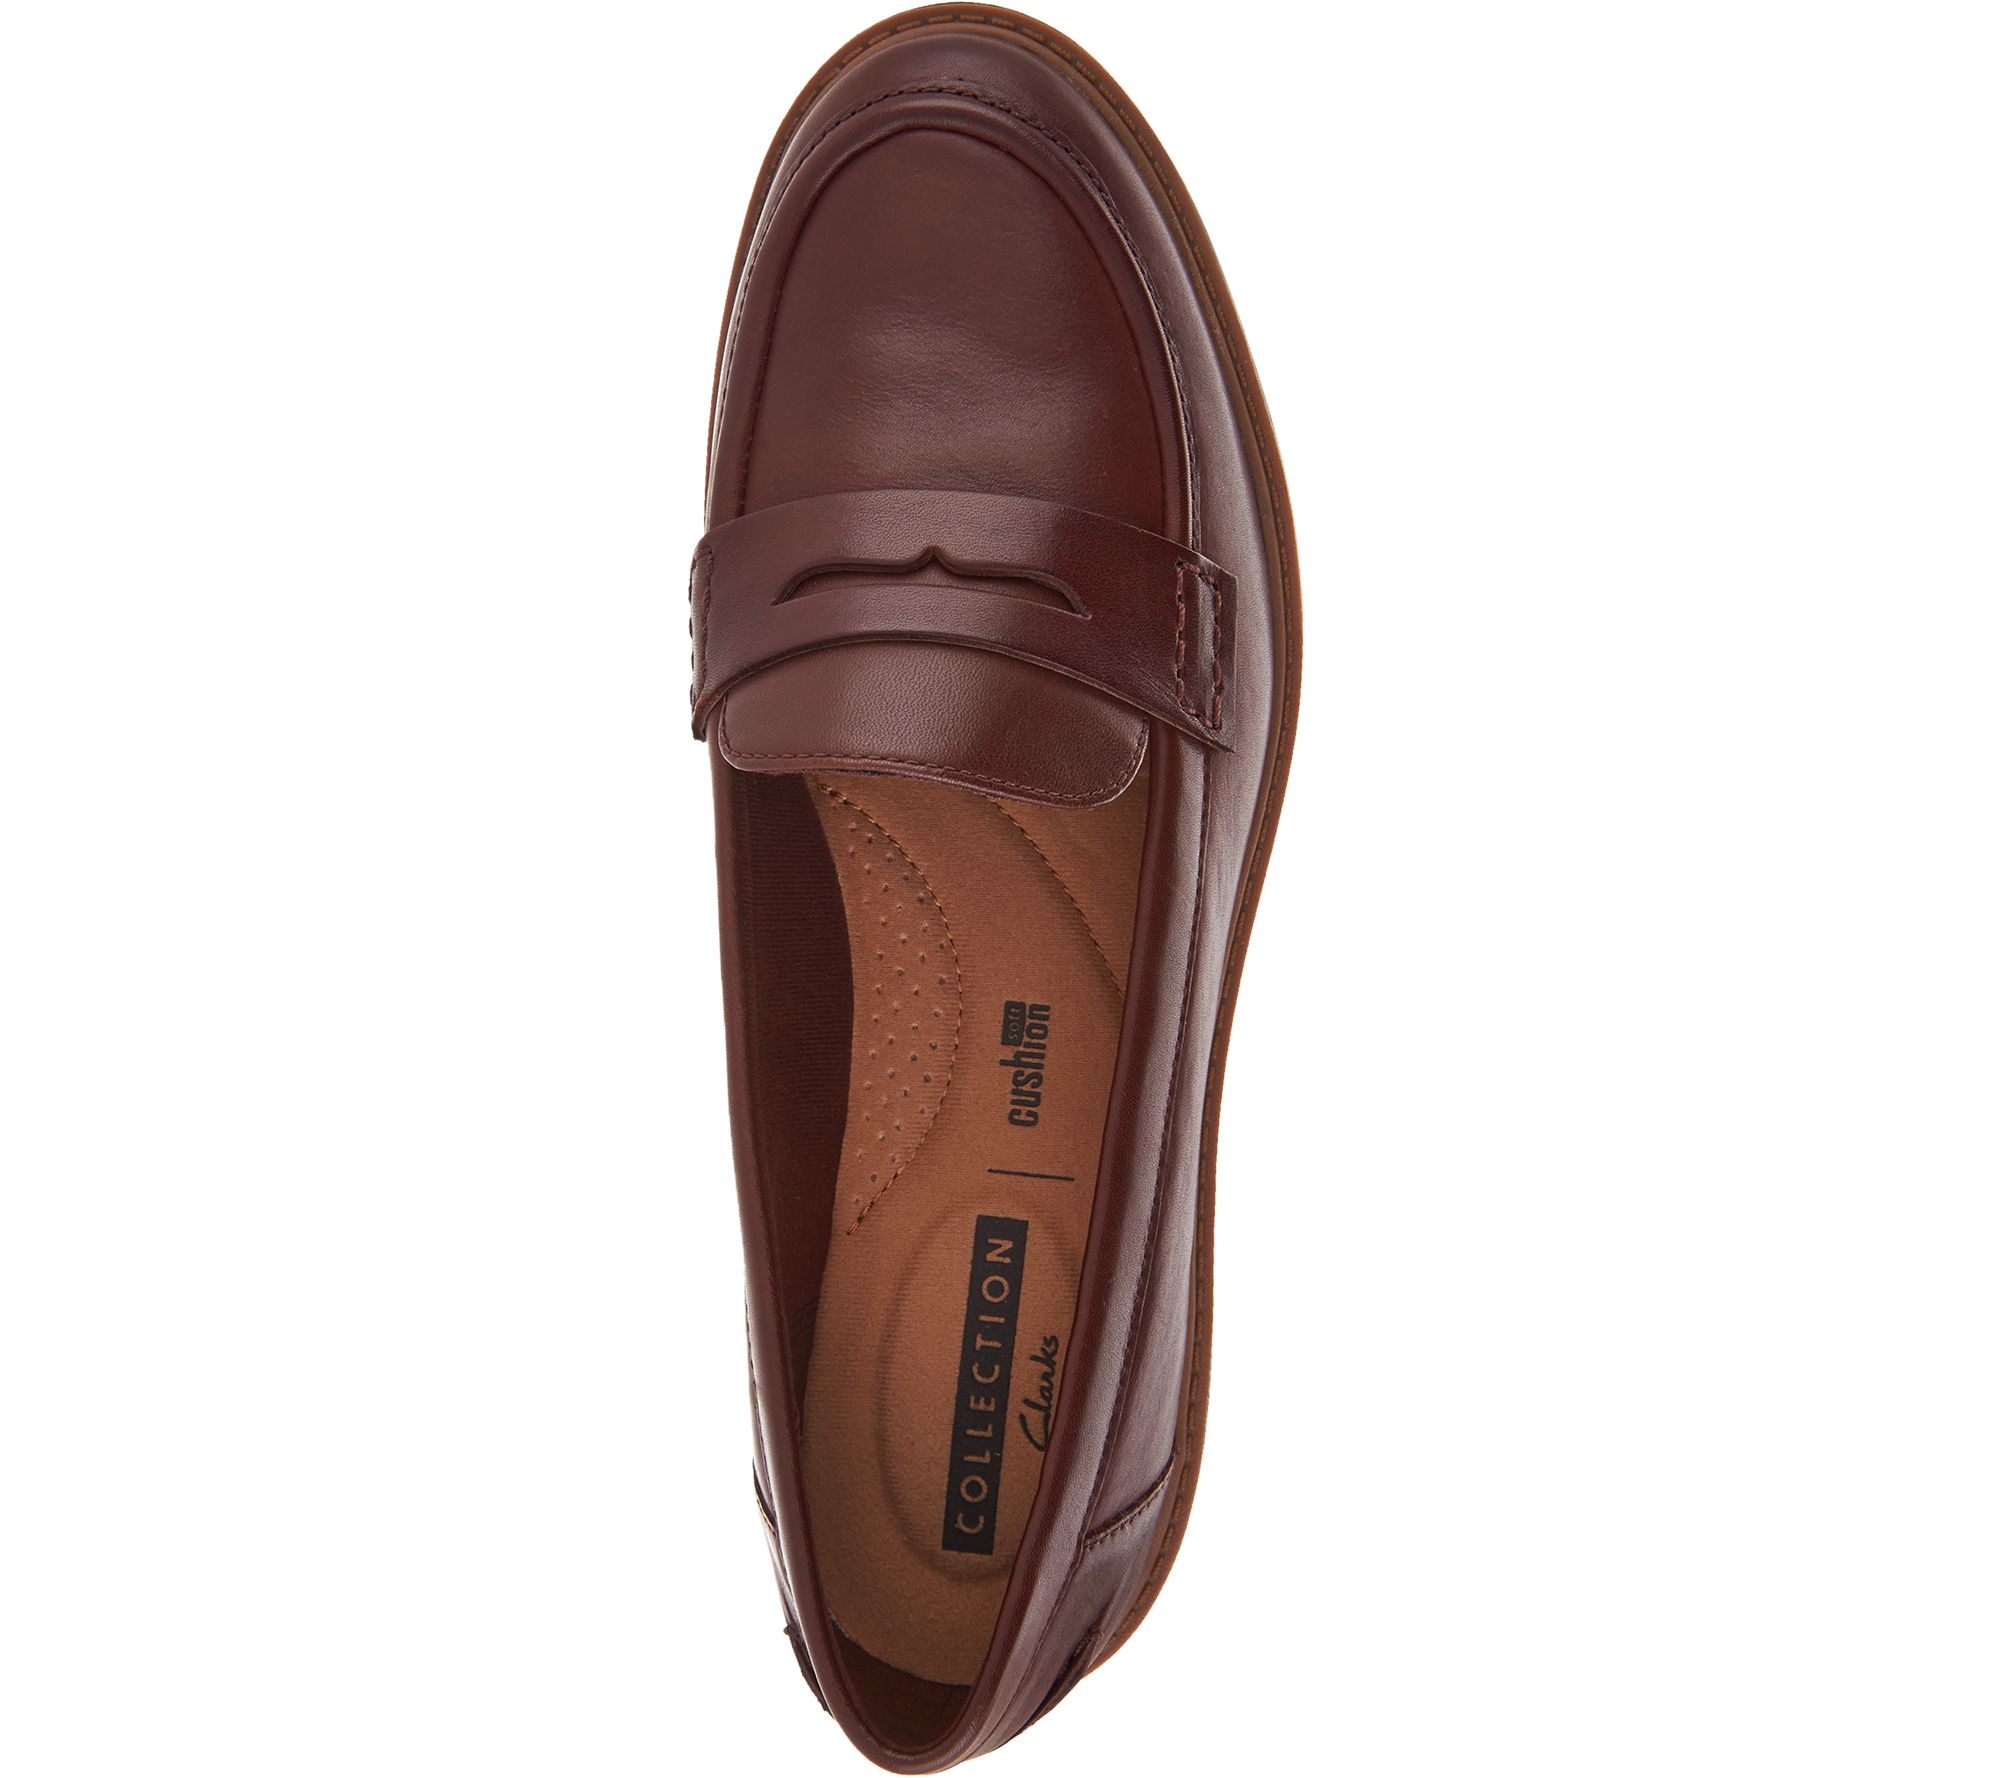 5c613dadb29 Clarks Leather Slip-on Loafers - Raisie Eletta - Page 1 — QVC.com